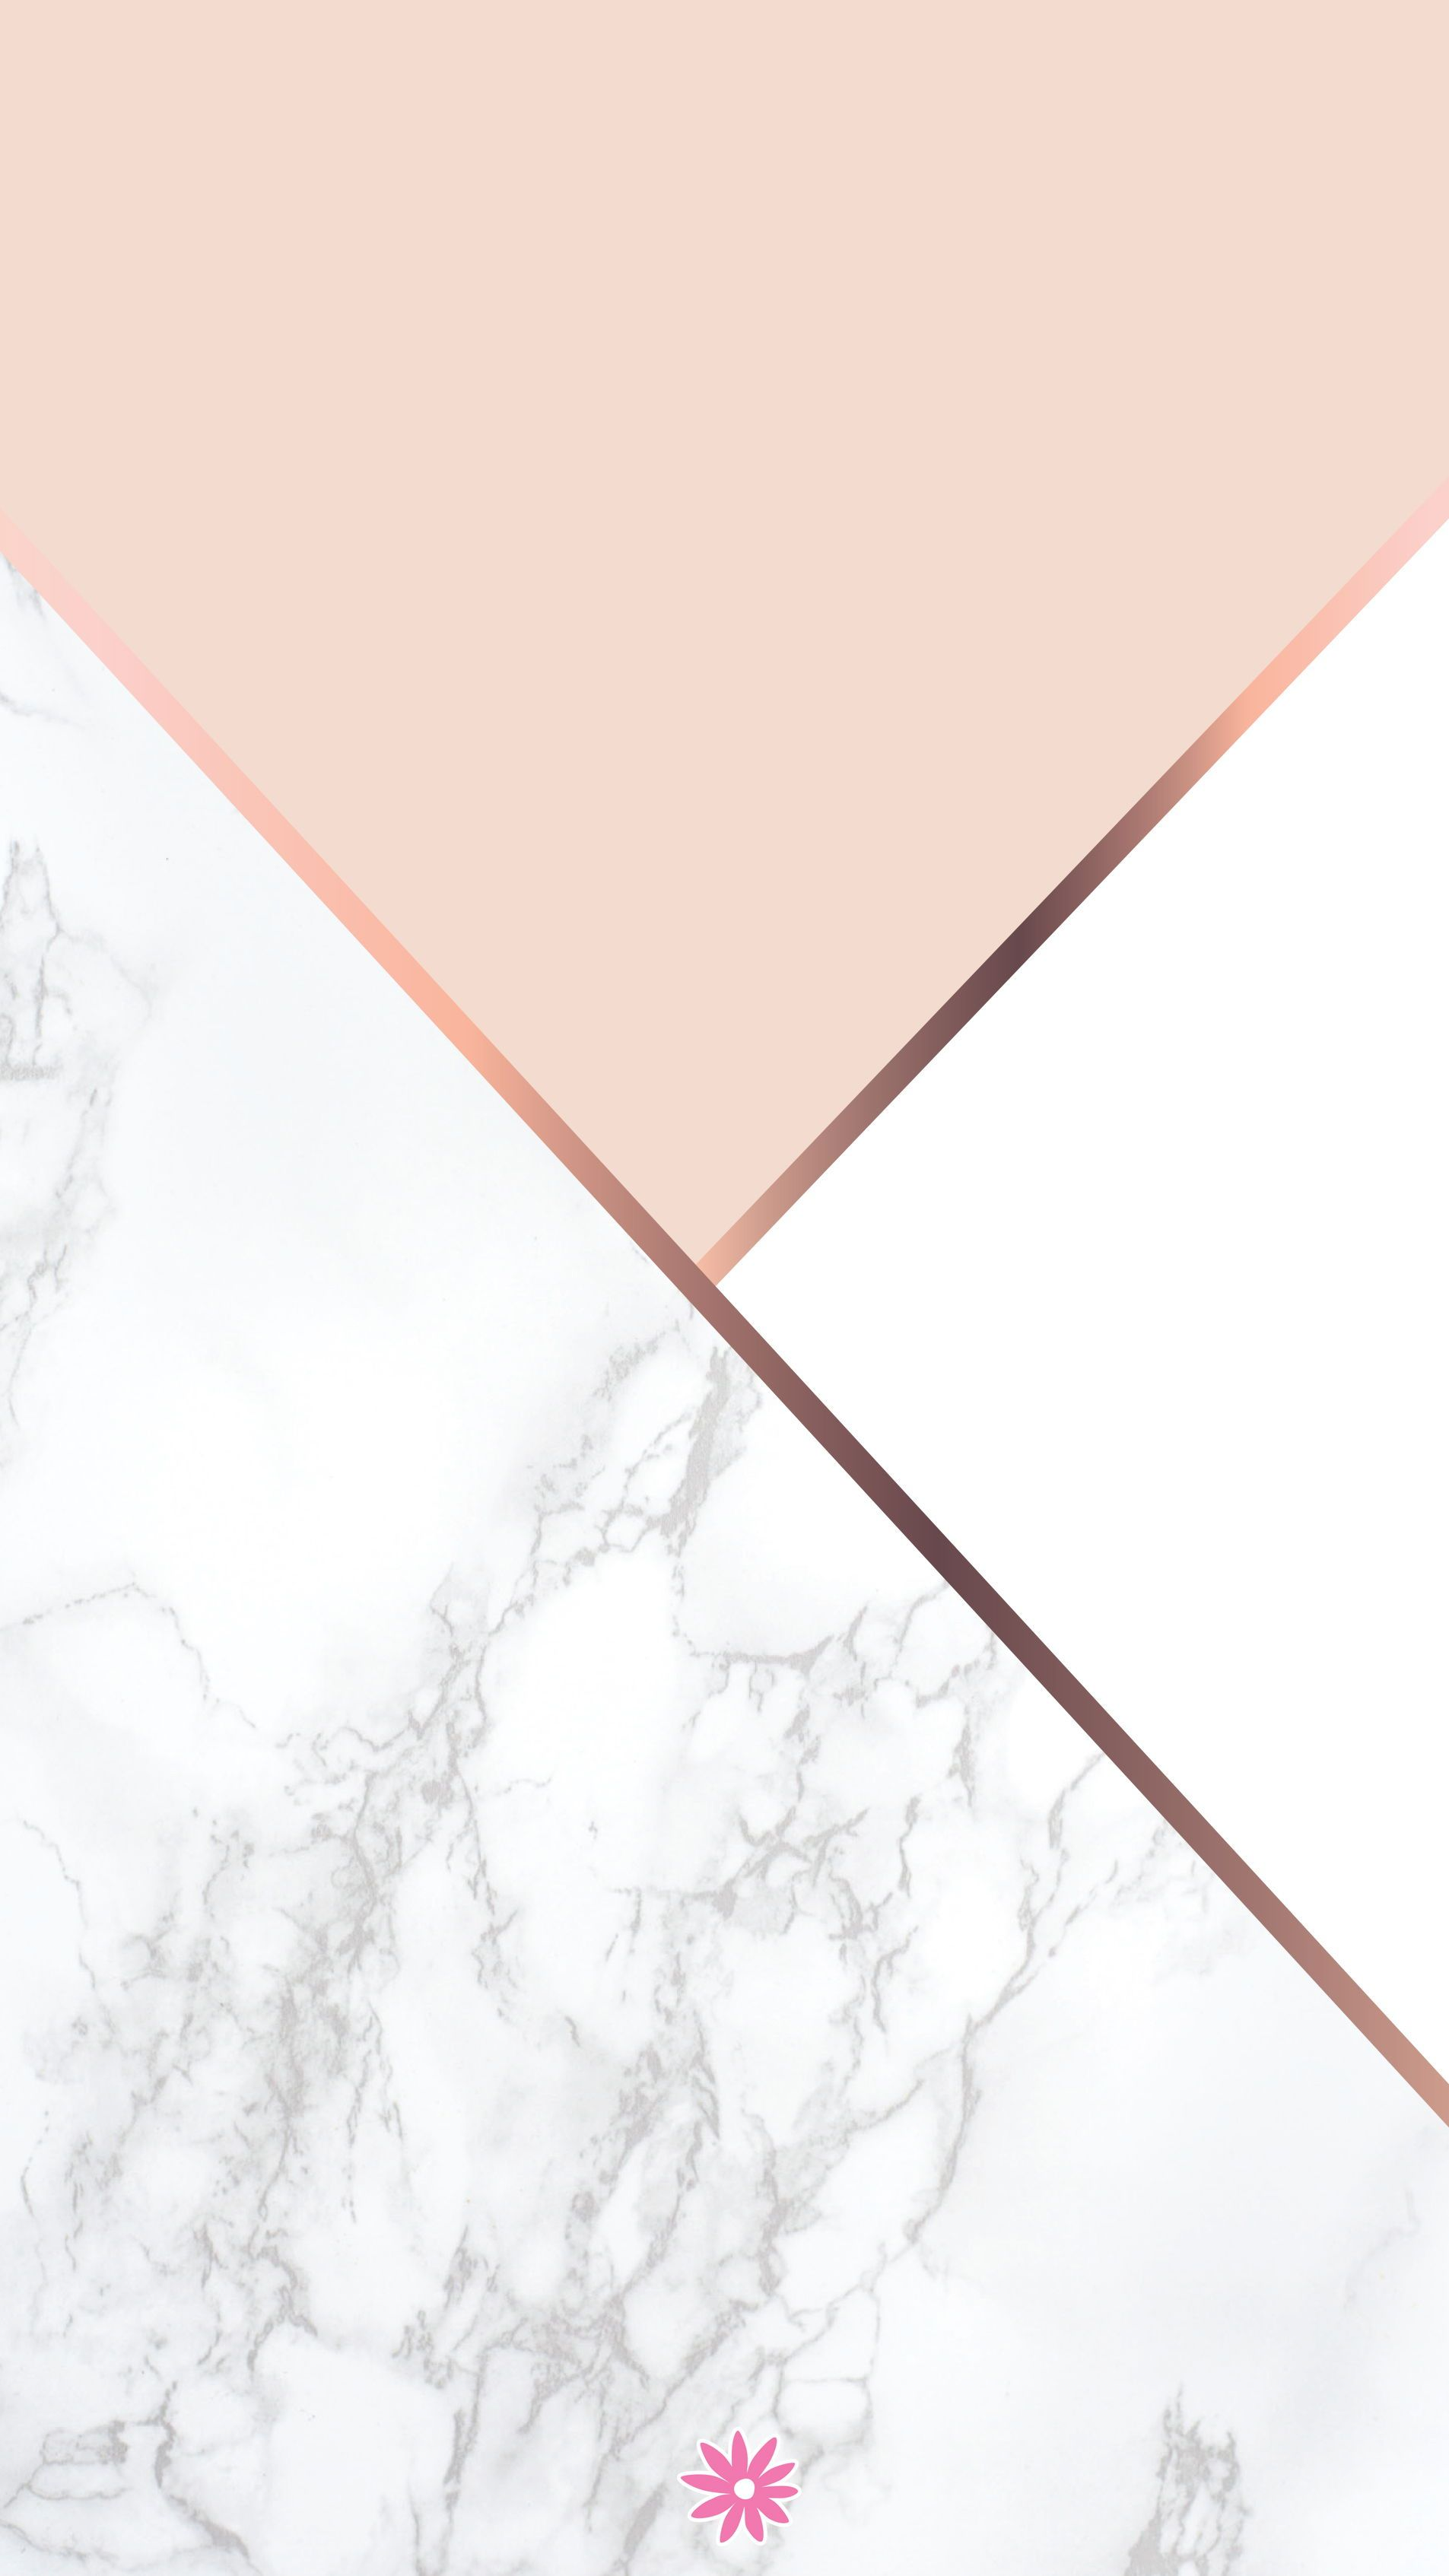 Click To Check Out All Free Wallpaper And Printables Bloomplanners Bloomplanner Blo Papel De Parede De Marmore Parede De Marmore Papel De Parede De Ouro